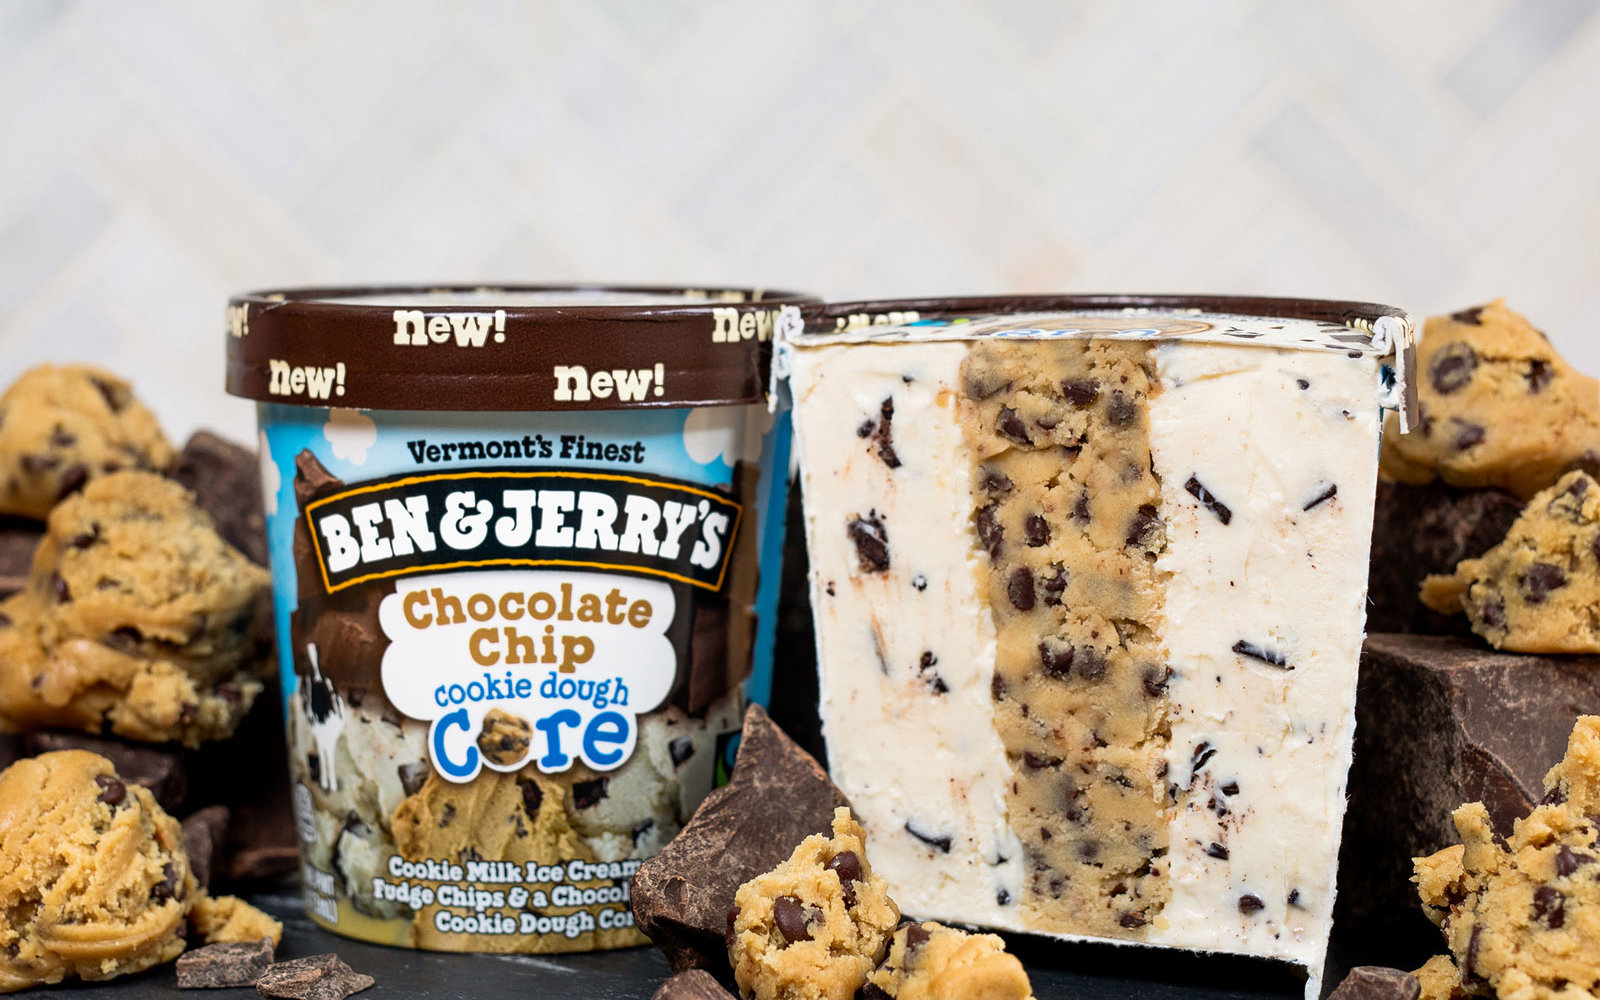 Ben & Jerry's 3 New Flavors All Have Cookie Dough Cores